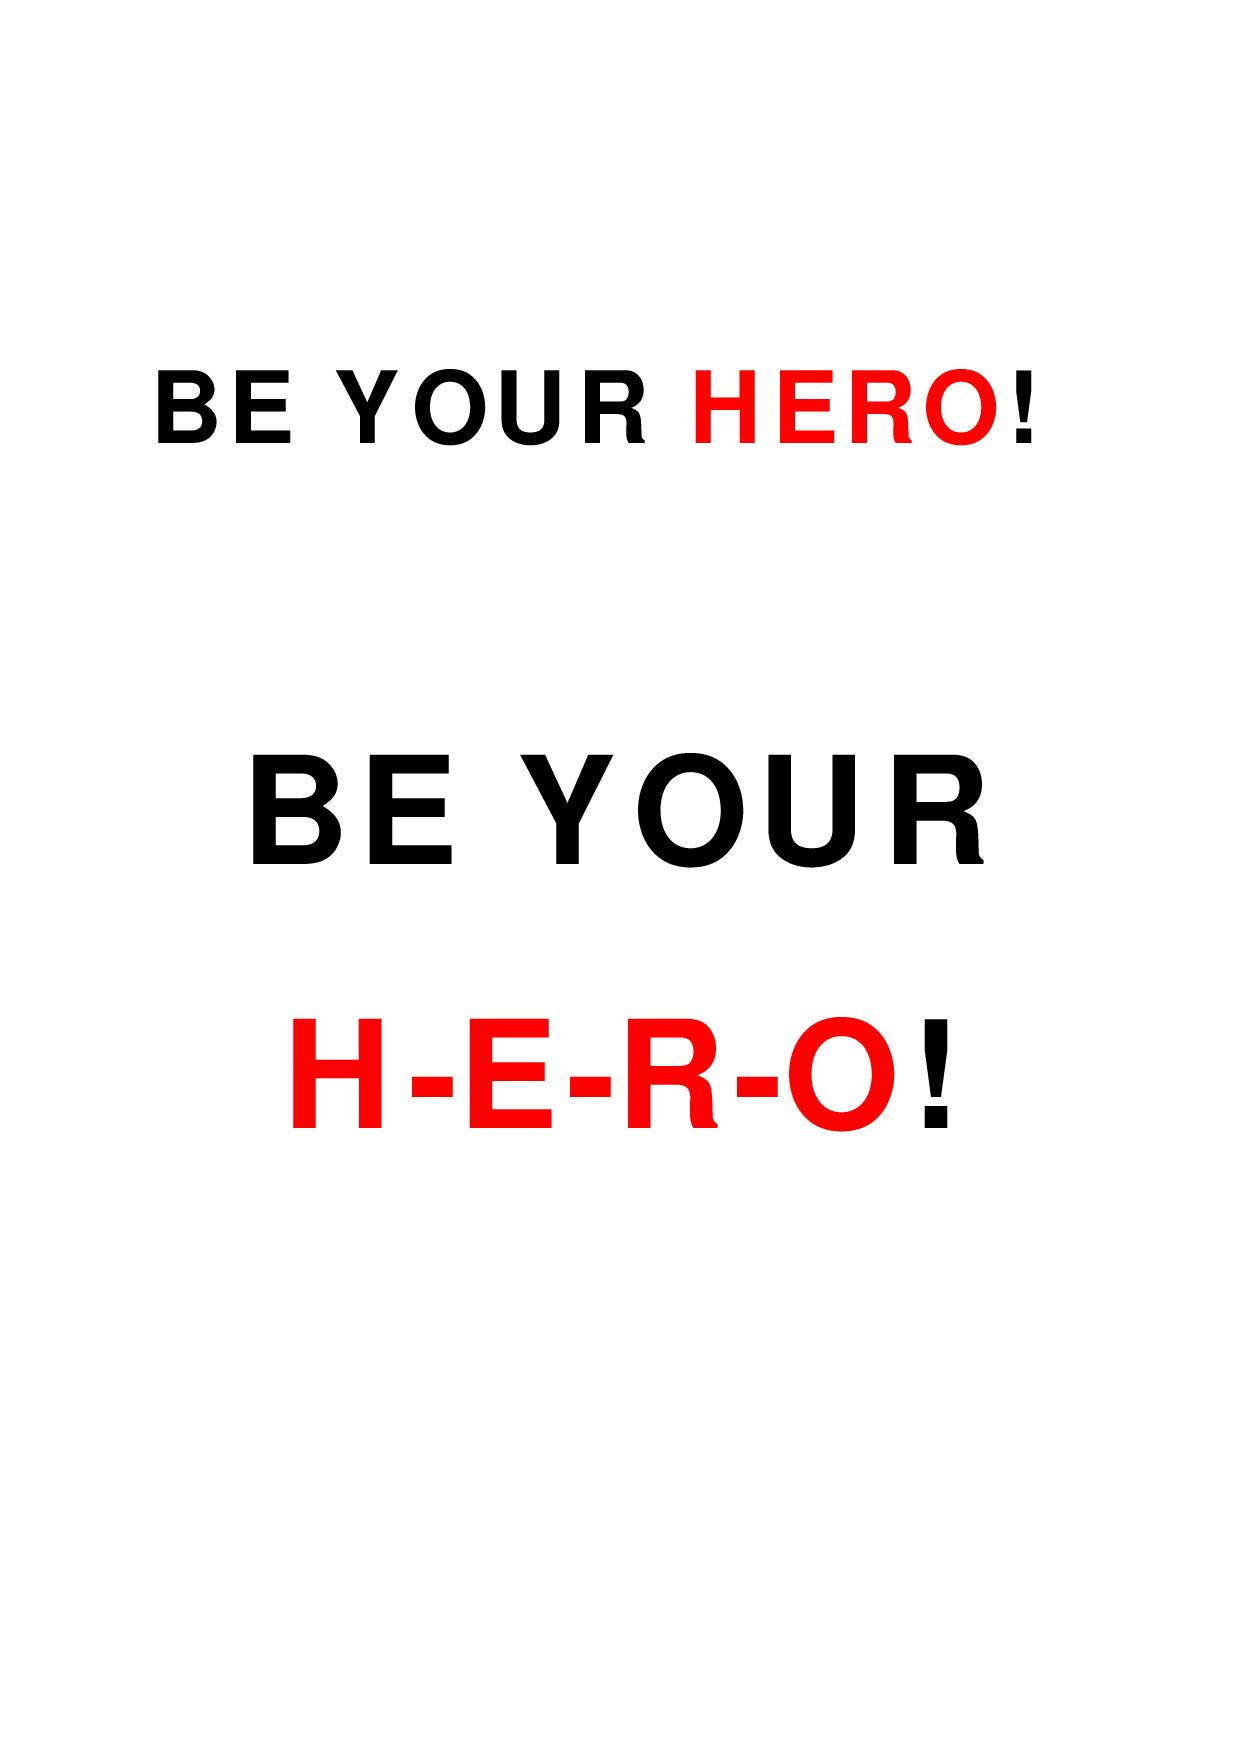 BE YOUR HERO - IMAGES-2014-page-001